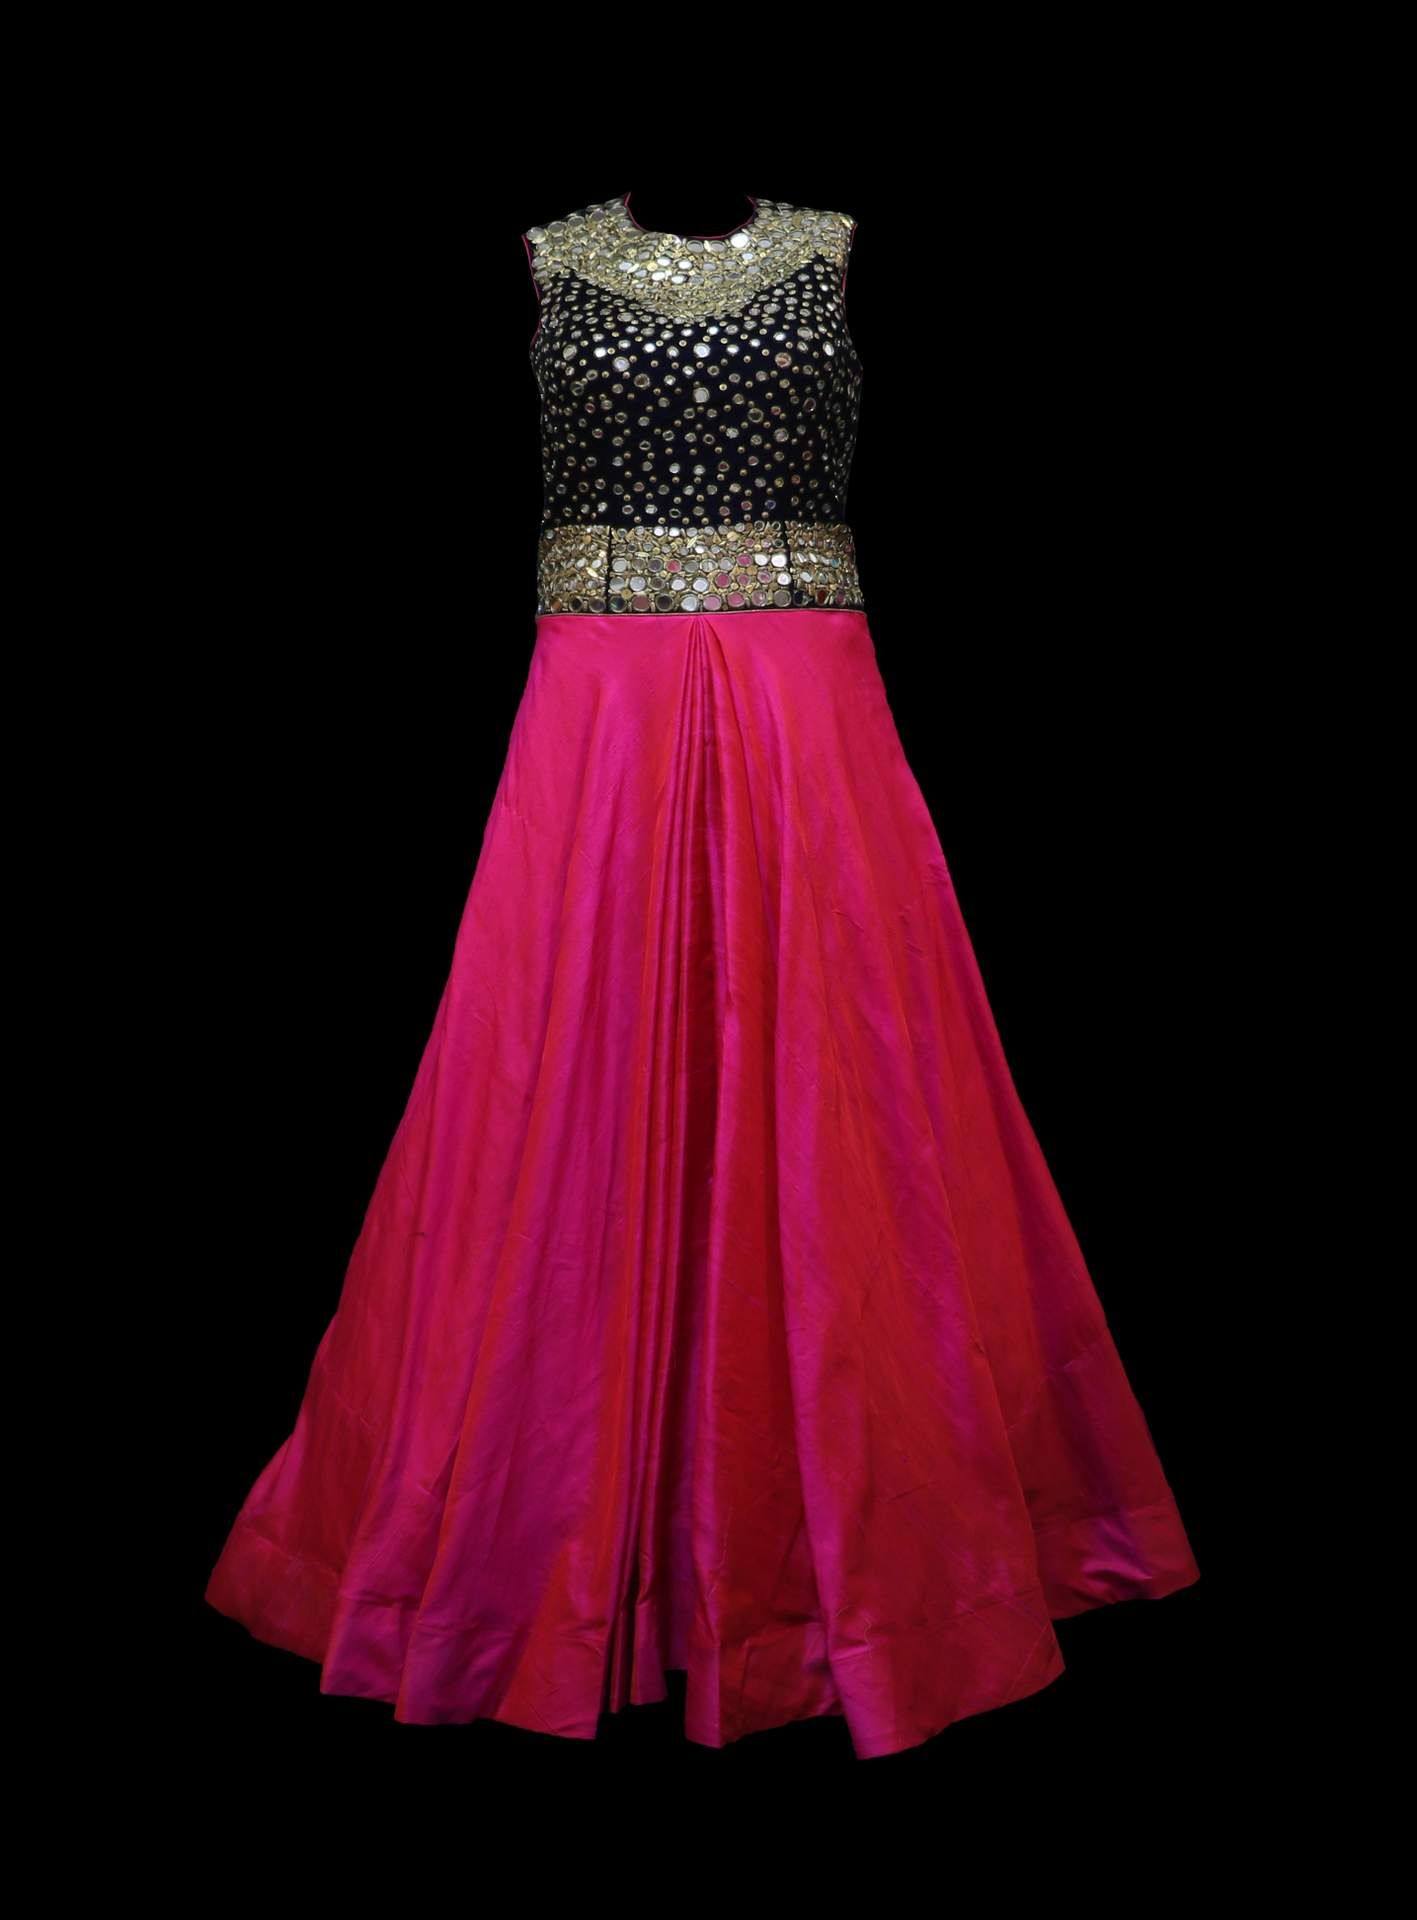 wedding dresses for rent Wedding Dress Party Wear Clothes on Rent in India